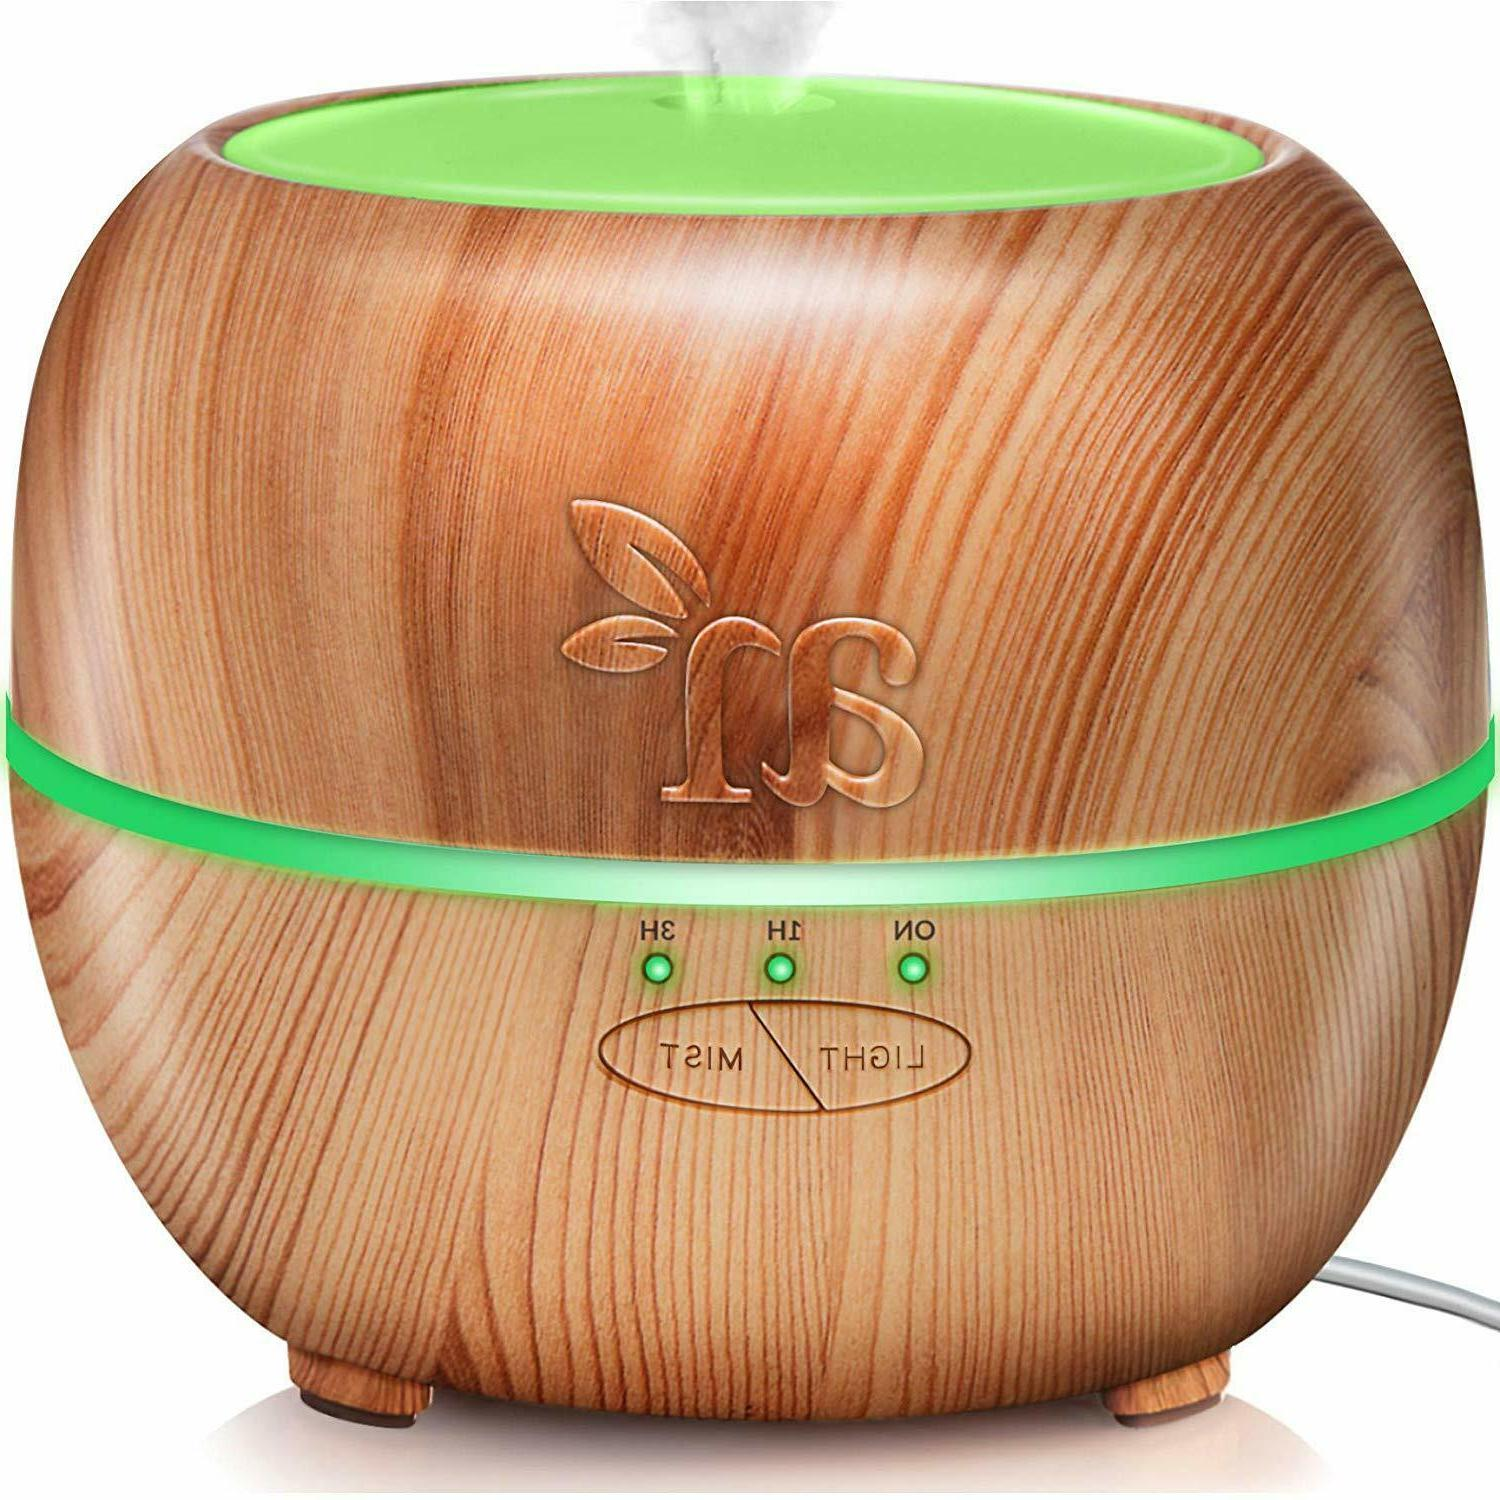 Artnaturals Essential Oil Diffuser Plus, Blonde Wood, 13.5 F